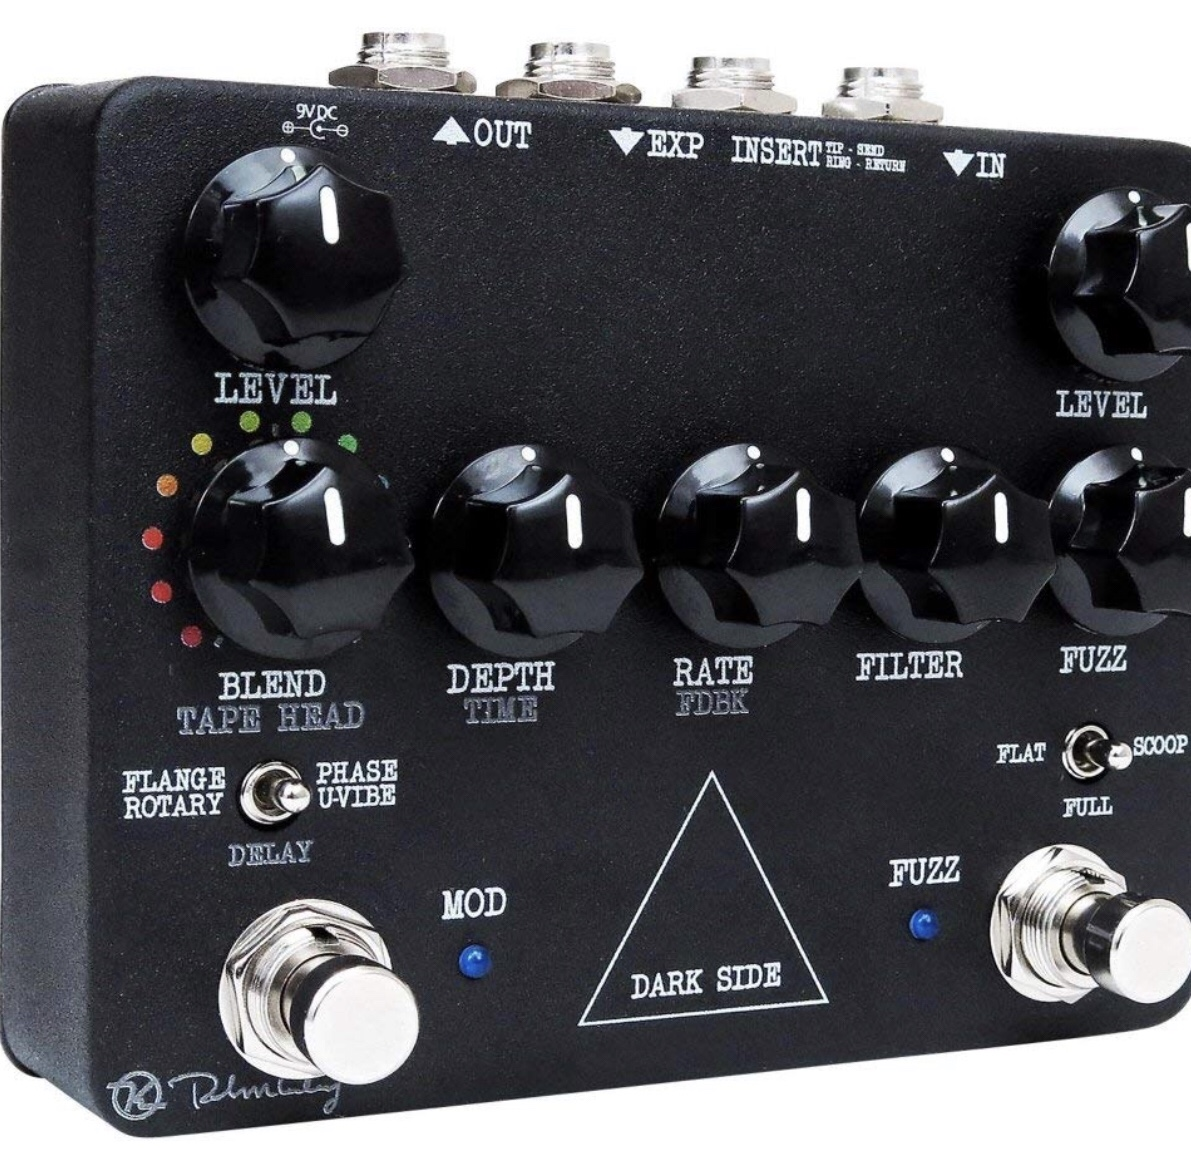 The go to device to recreate the guitar effects Used by David Gilmour on pink Floyd's Dark Side Of The Moon Album. Quite a cool piece of gear.